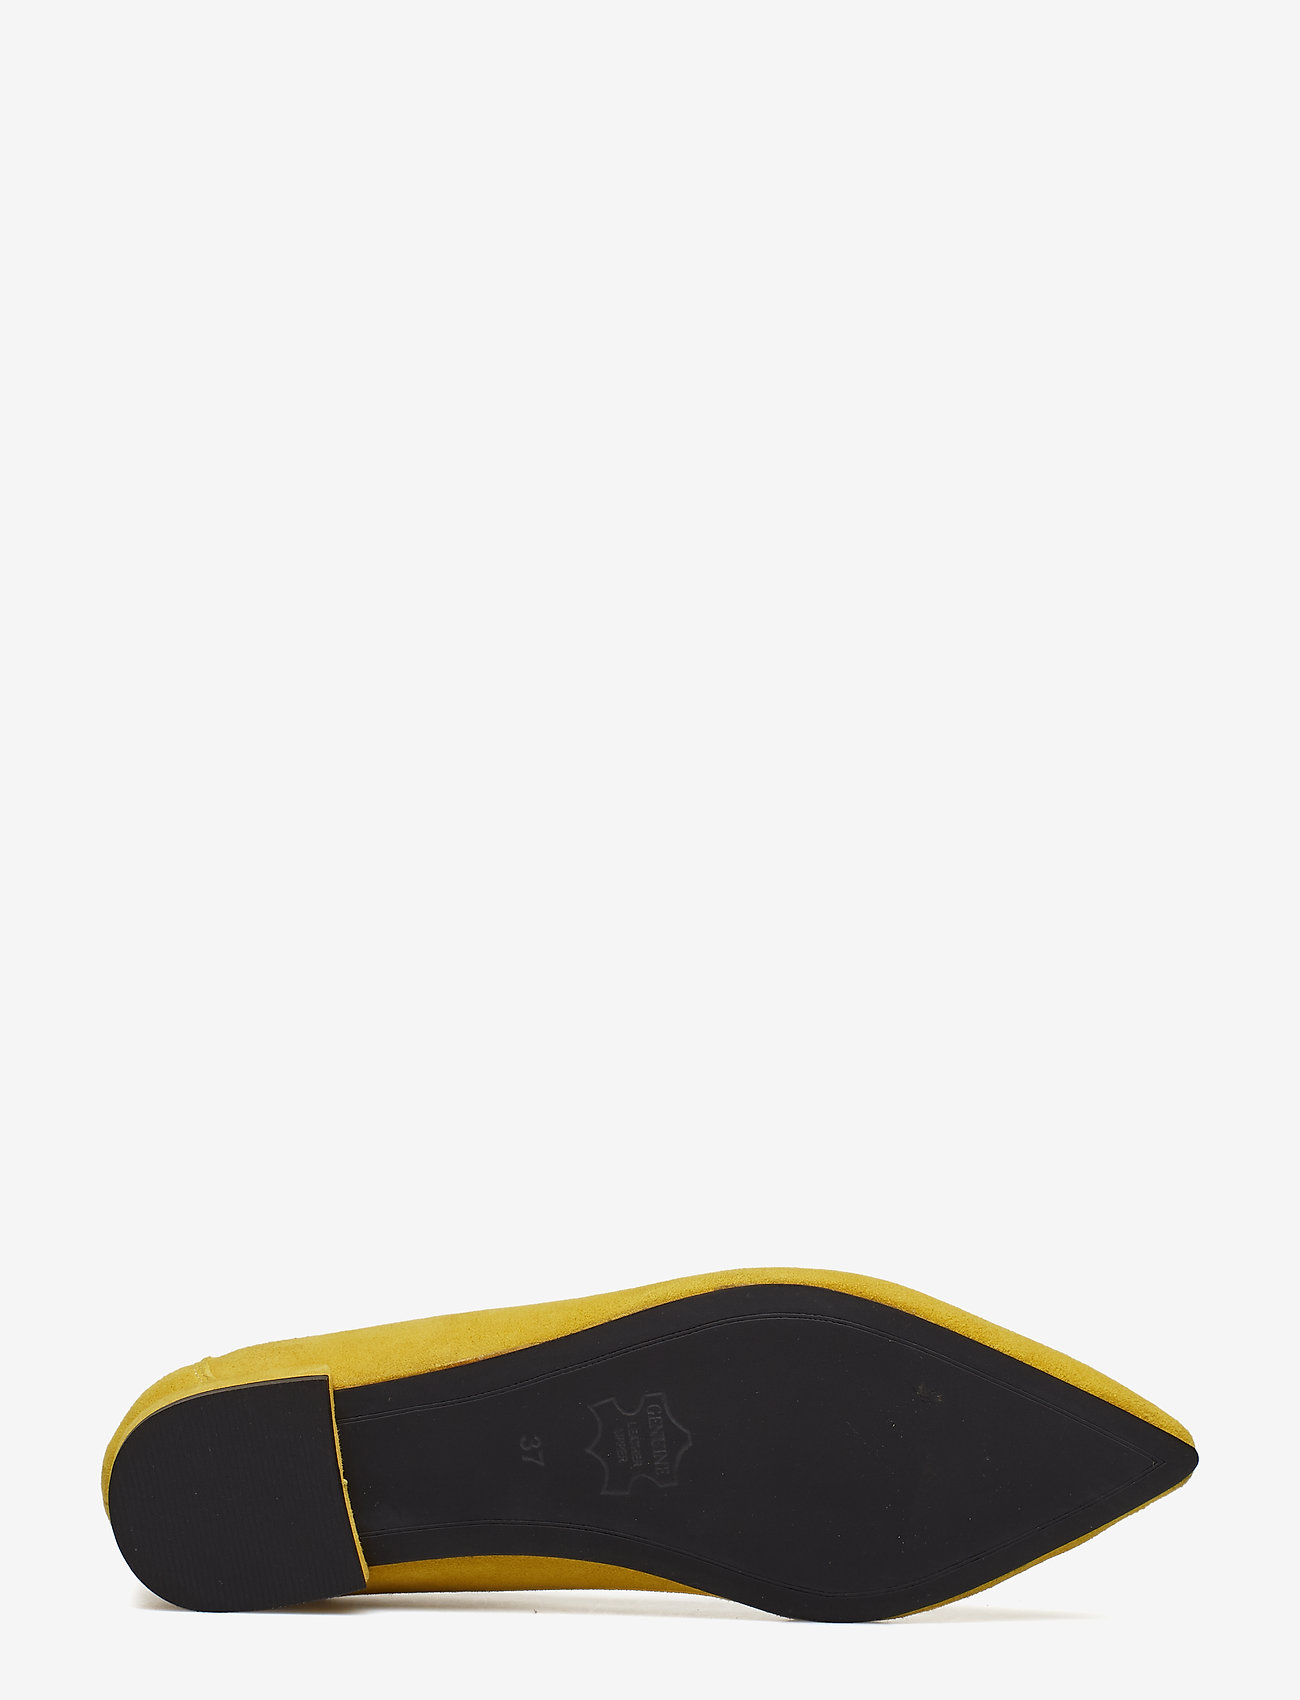 Zola Loafer (Yellow) - Shoe The Bear